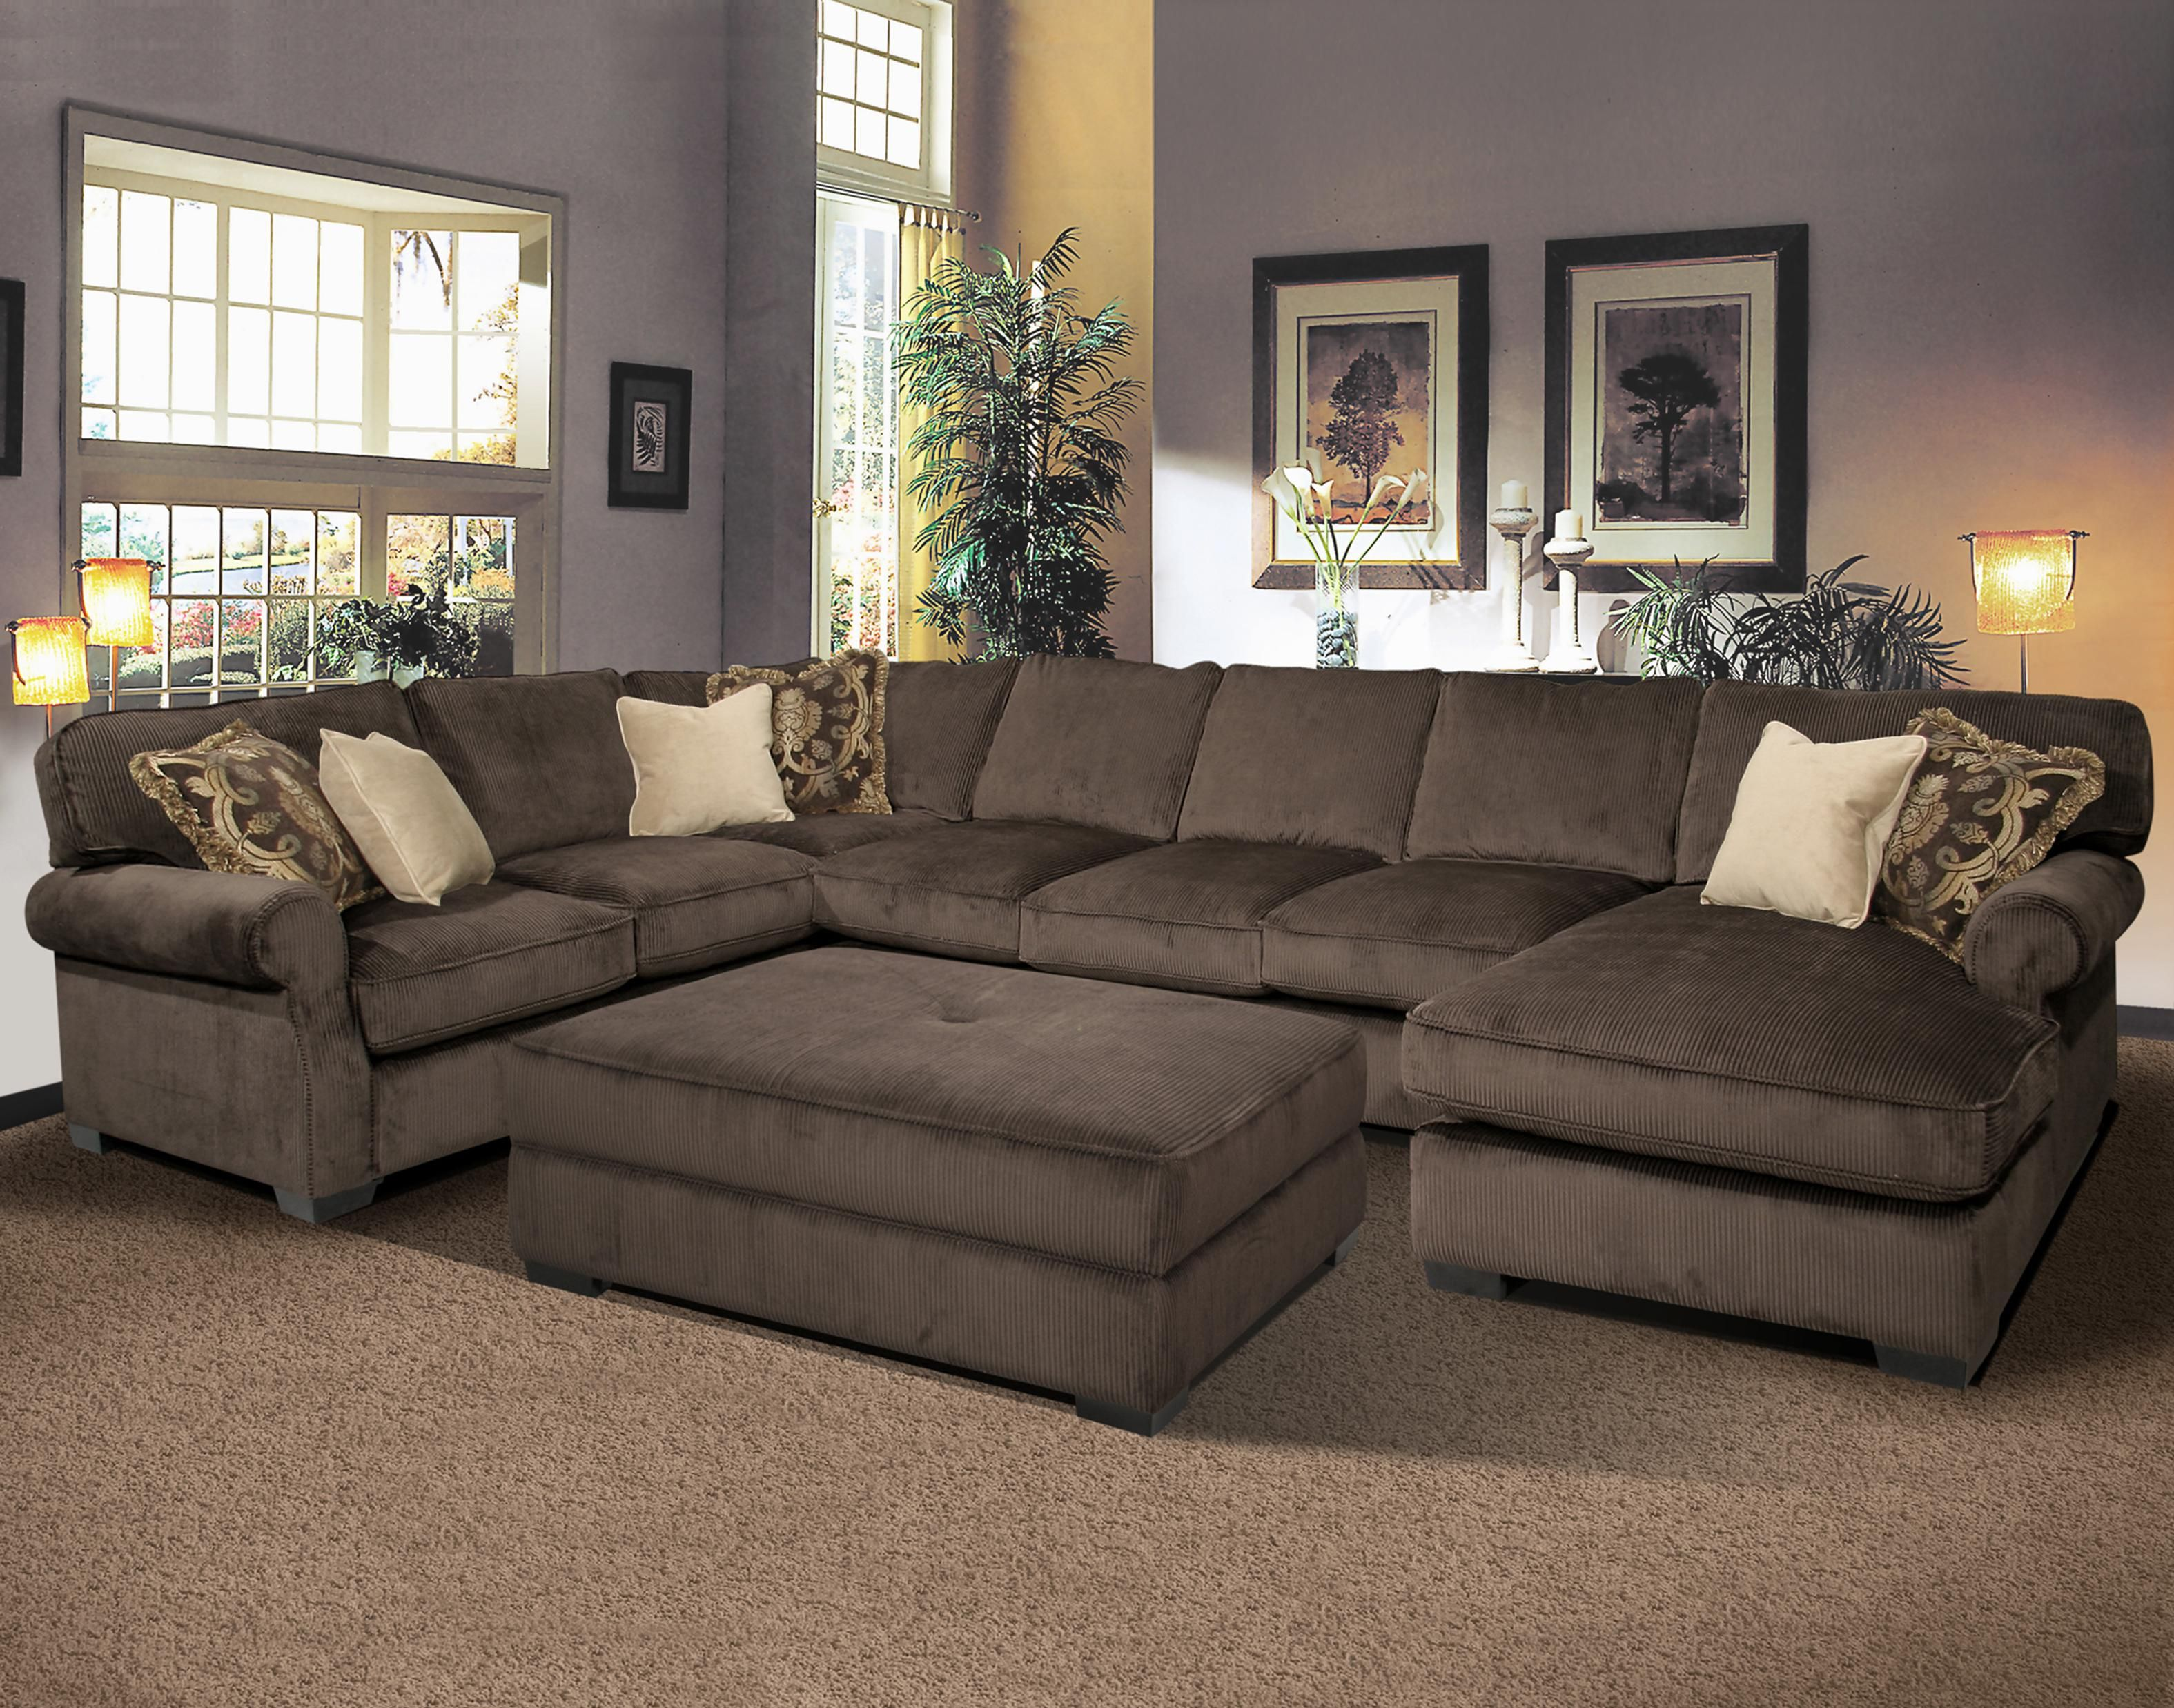 couch couches room tremendous round oversized comfortable leather sofas for lovely lovesac furniture sectional using cuddle extra large deep living pillows sofa ideas sectionals decorating cozy